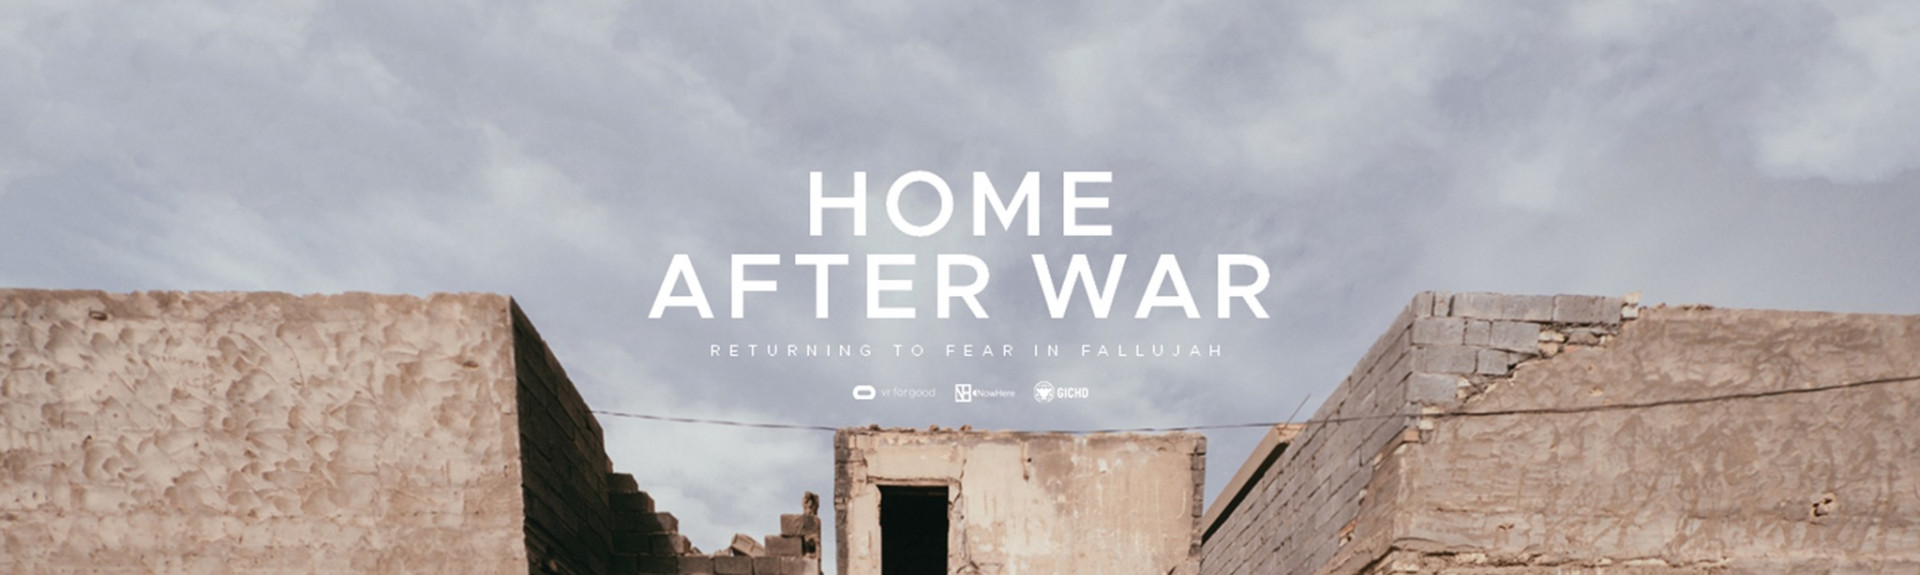 Home After War